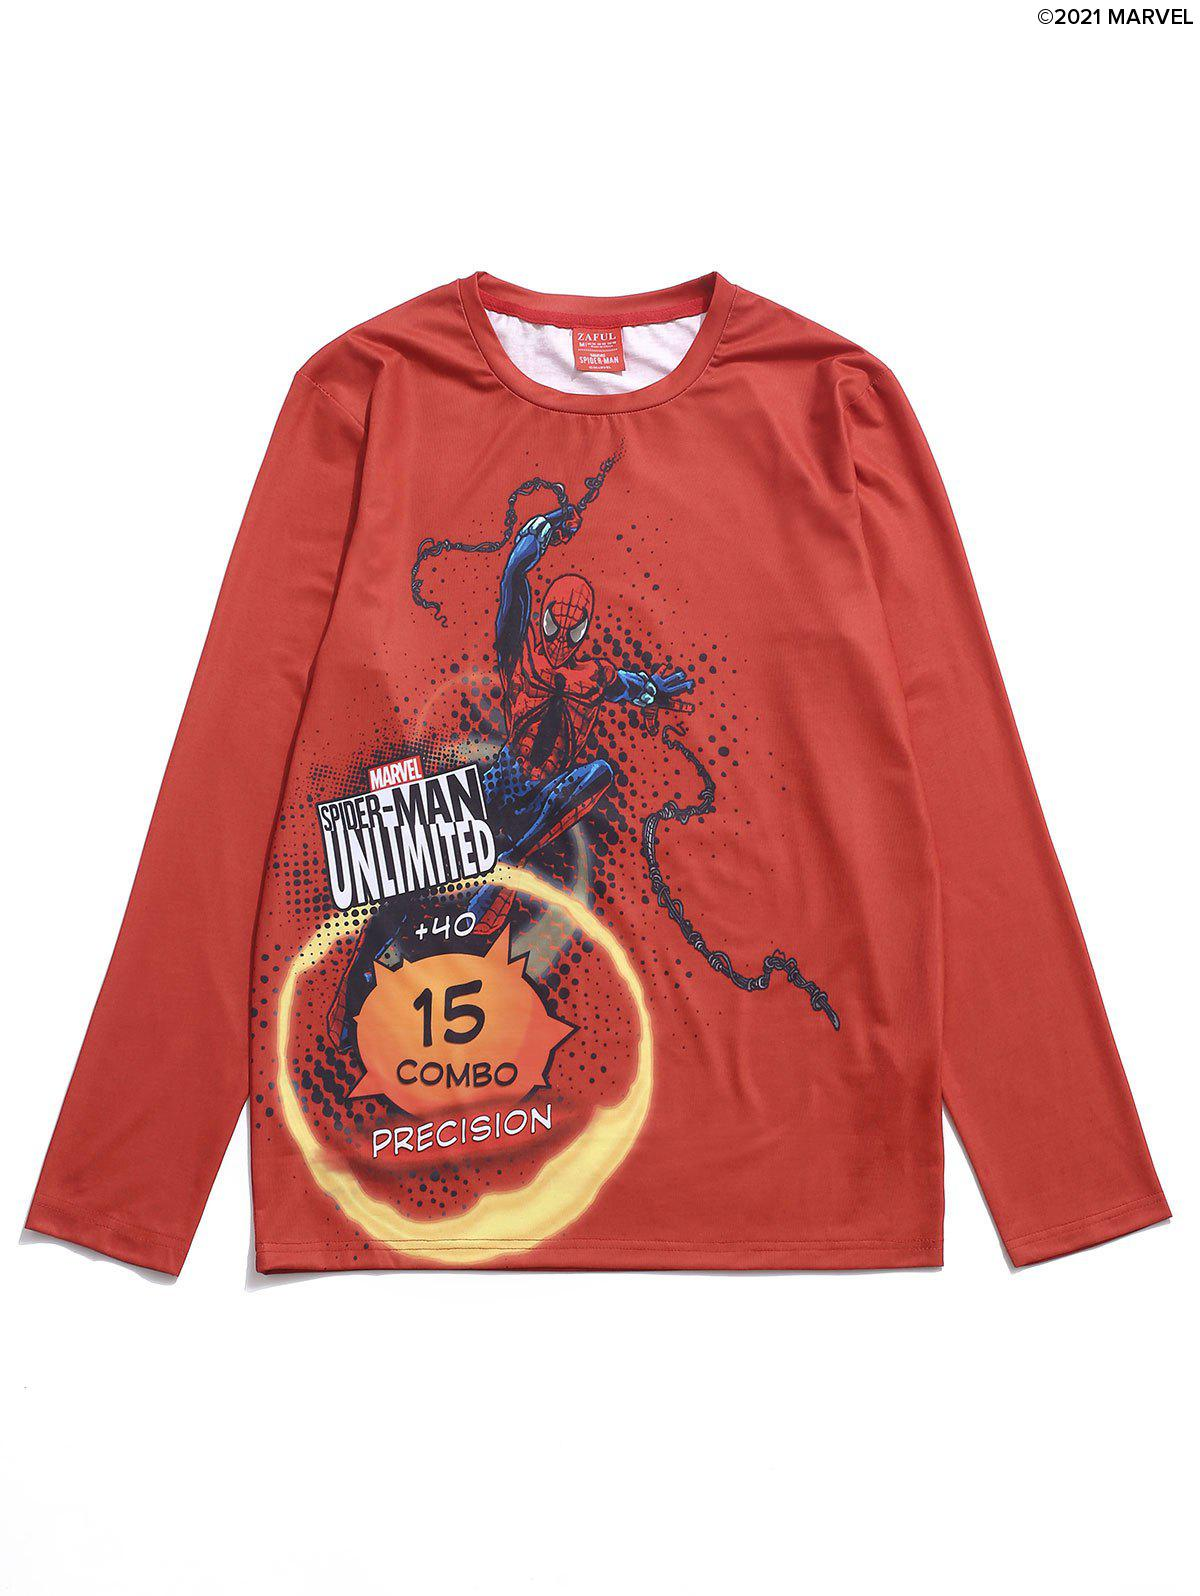 Cheap Marvel Spider-Man Unlimited Graphic Tee